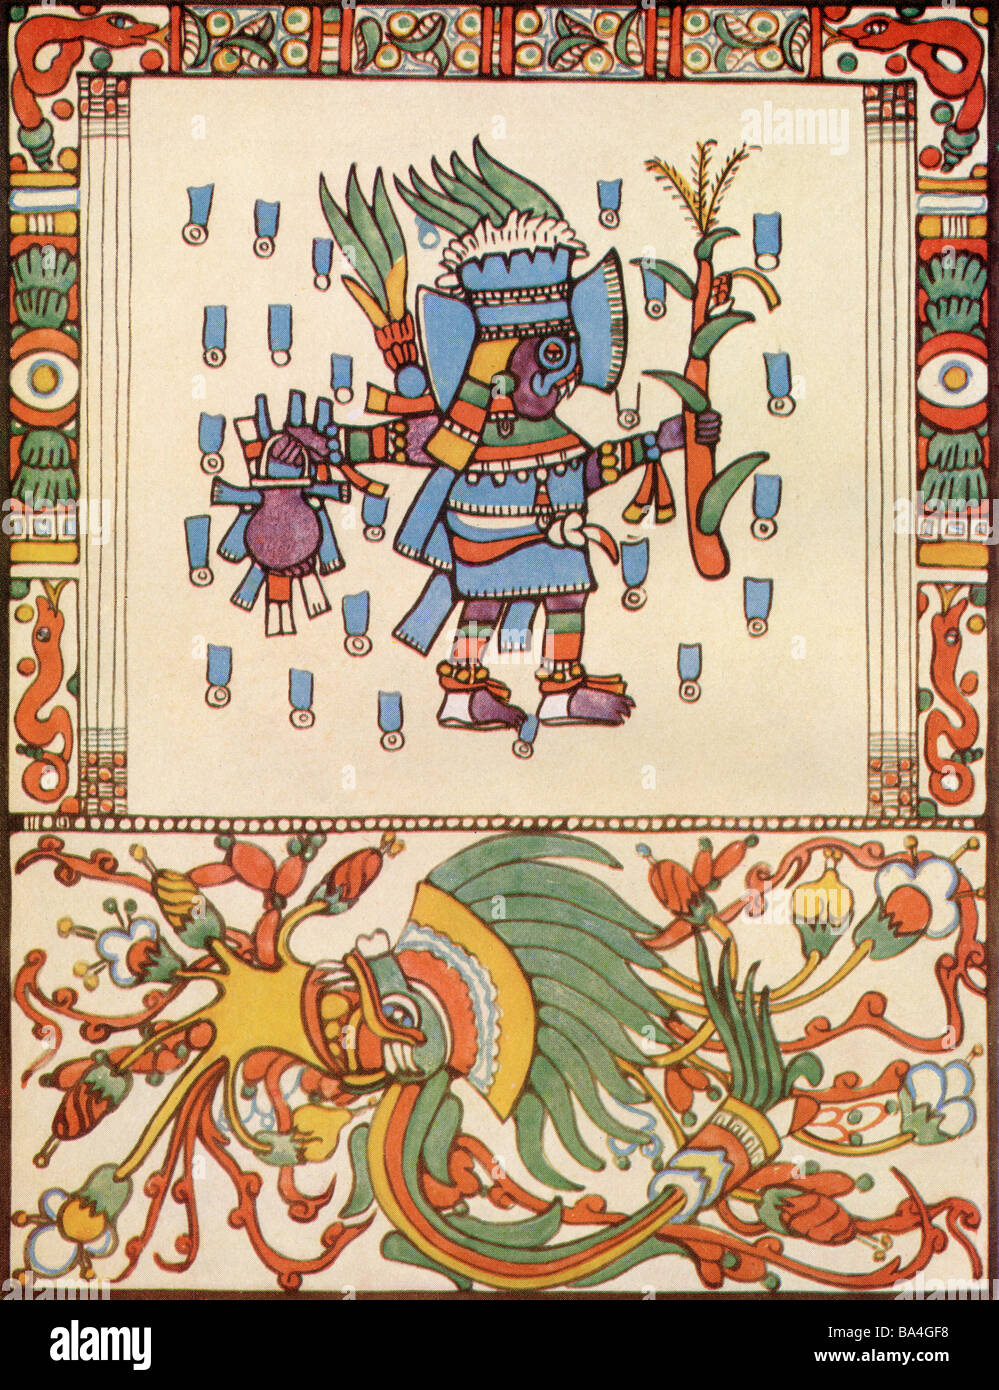 Tlaloc The Rain God from the Codex Vaticanus.  A Deity in Aztec religion a god of rain fertility and water - Stock Image